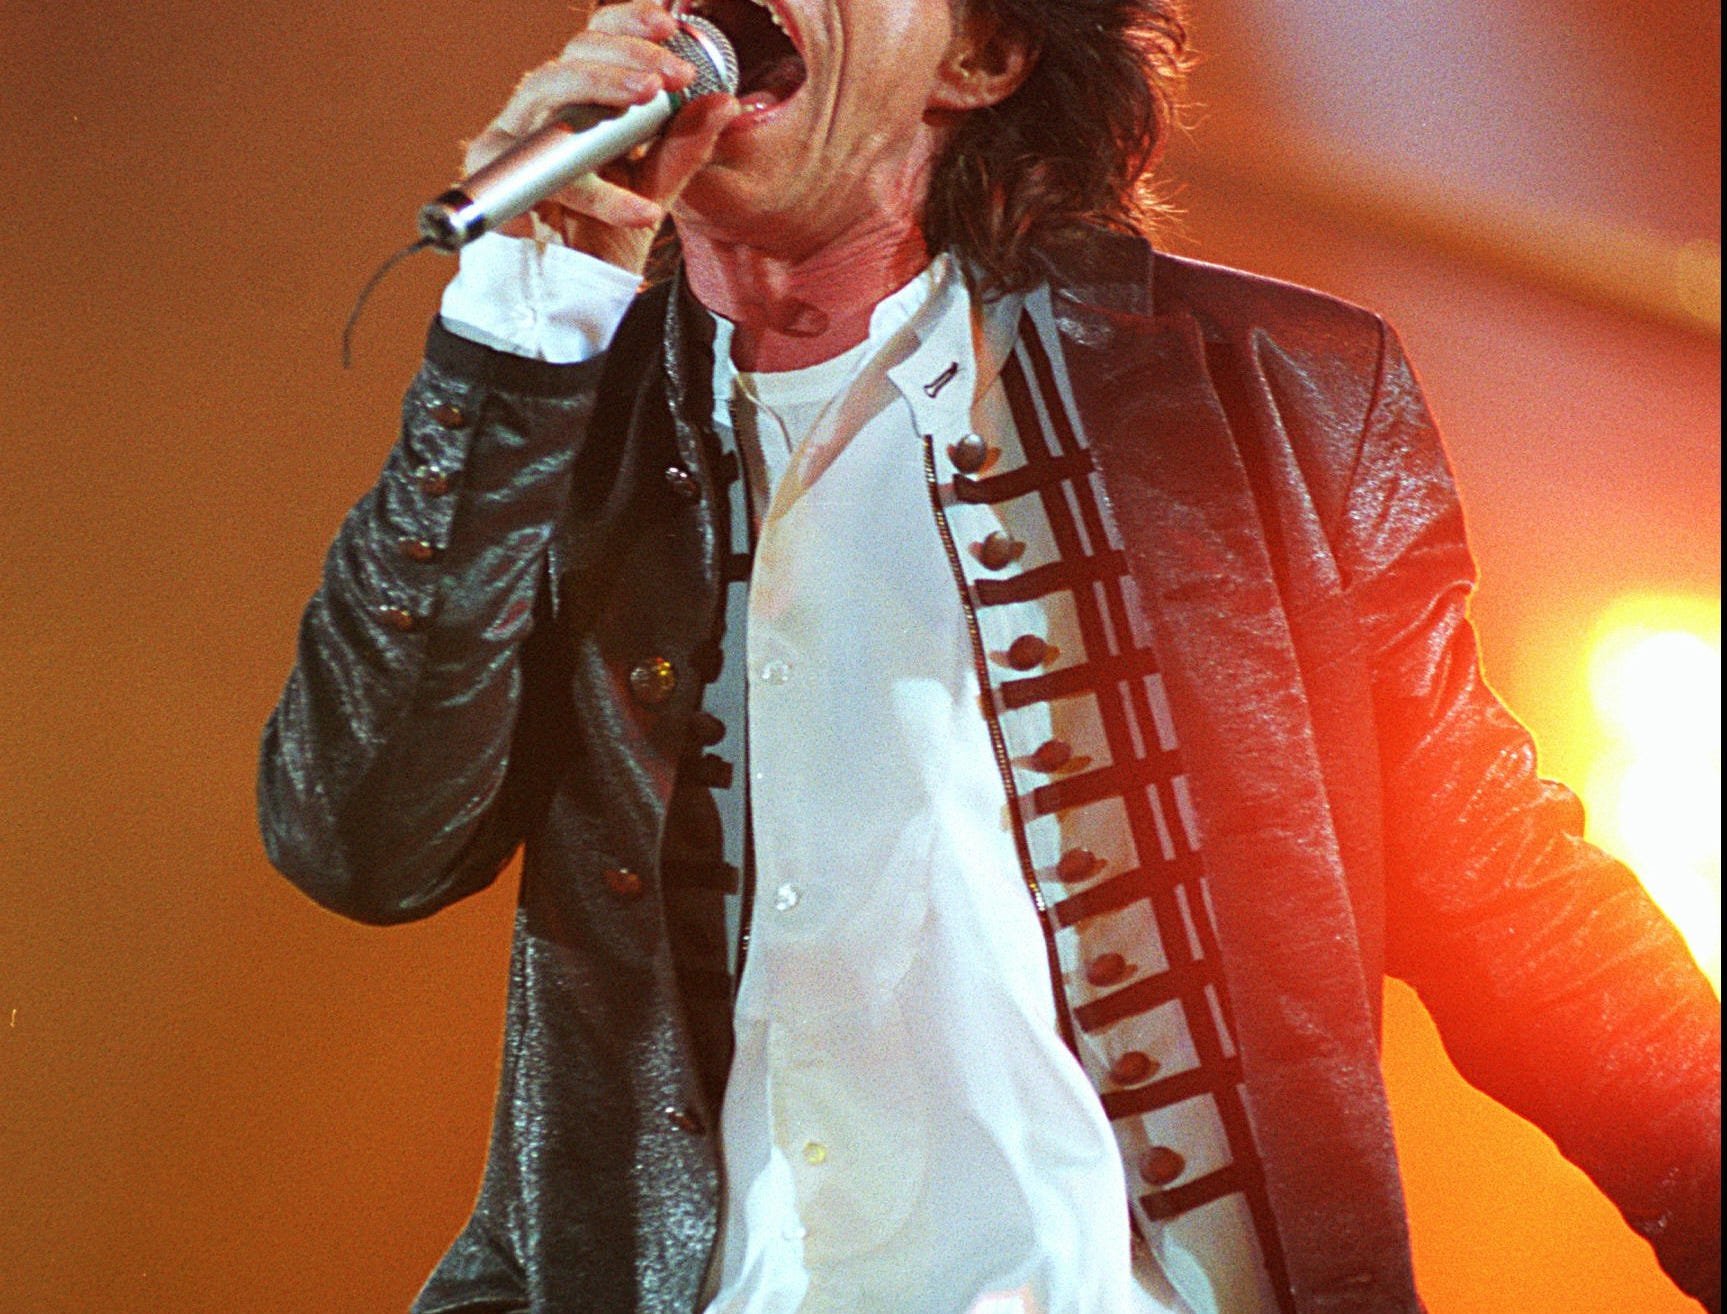 8/1/94 Mick Jagger of the Rolling Stones at RFK The Voodoo Lounge Tour